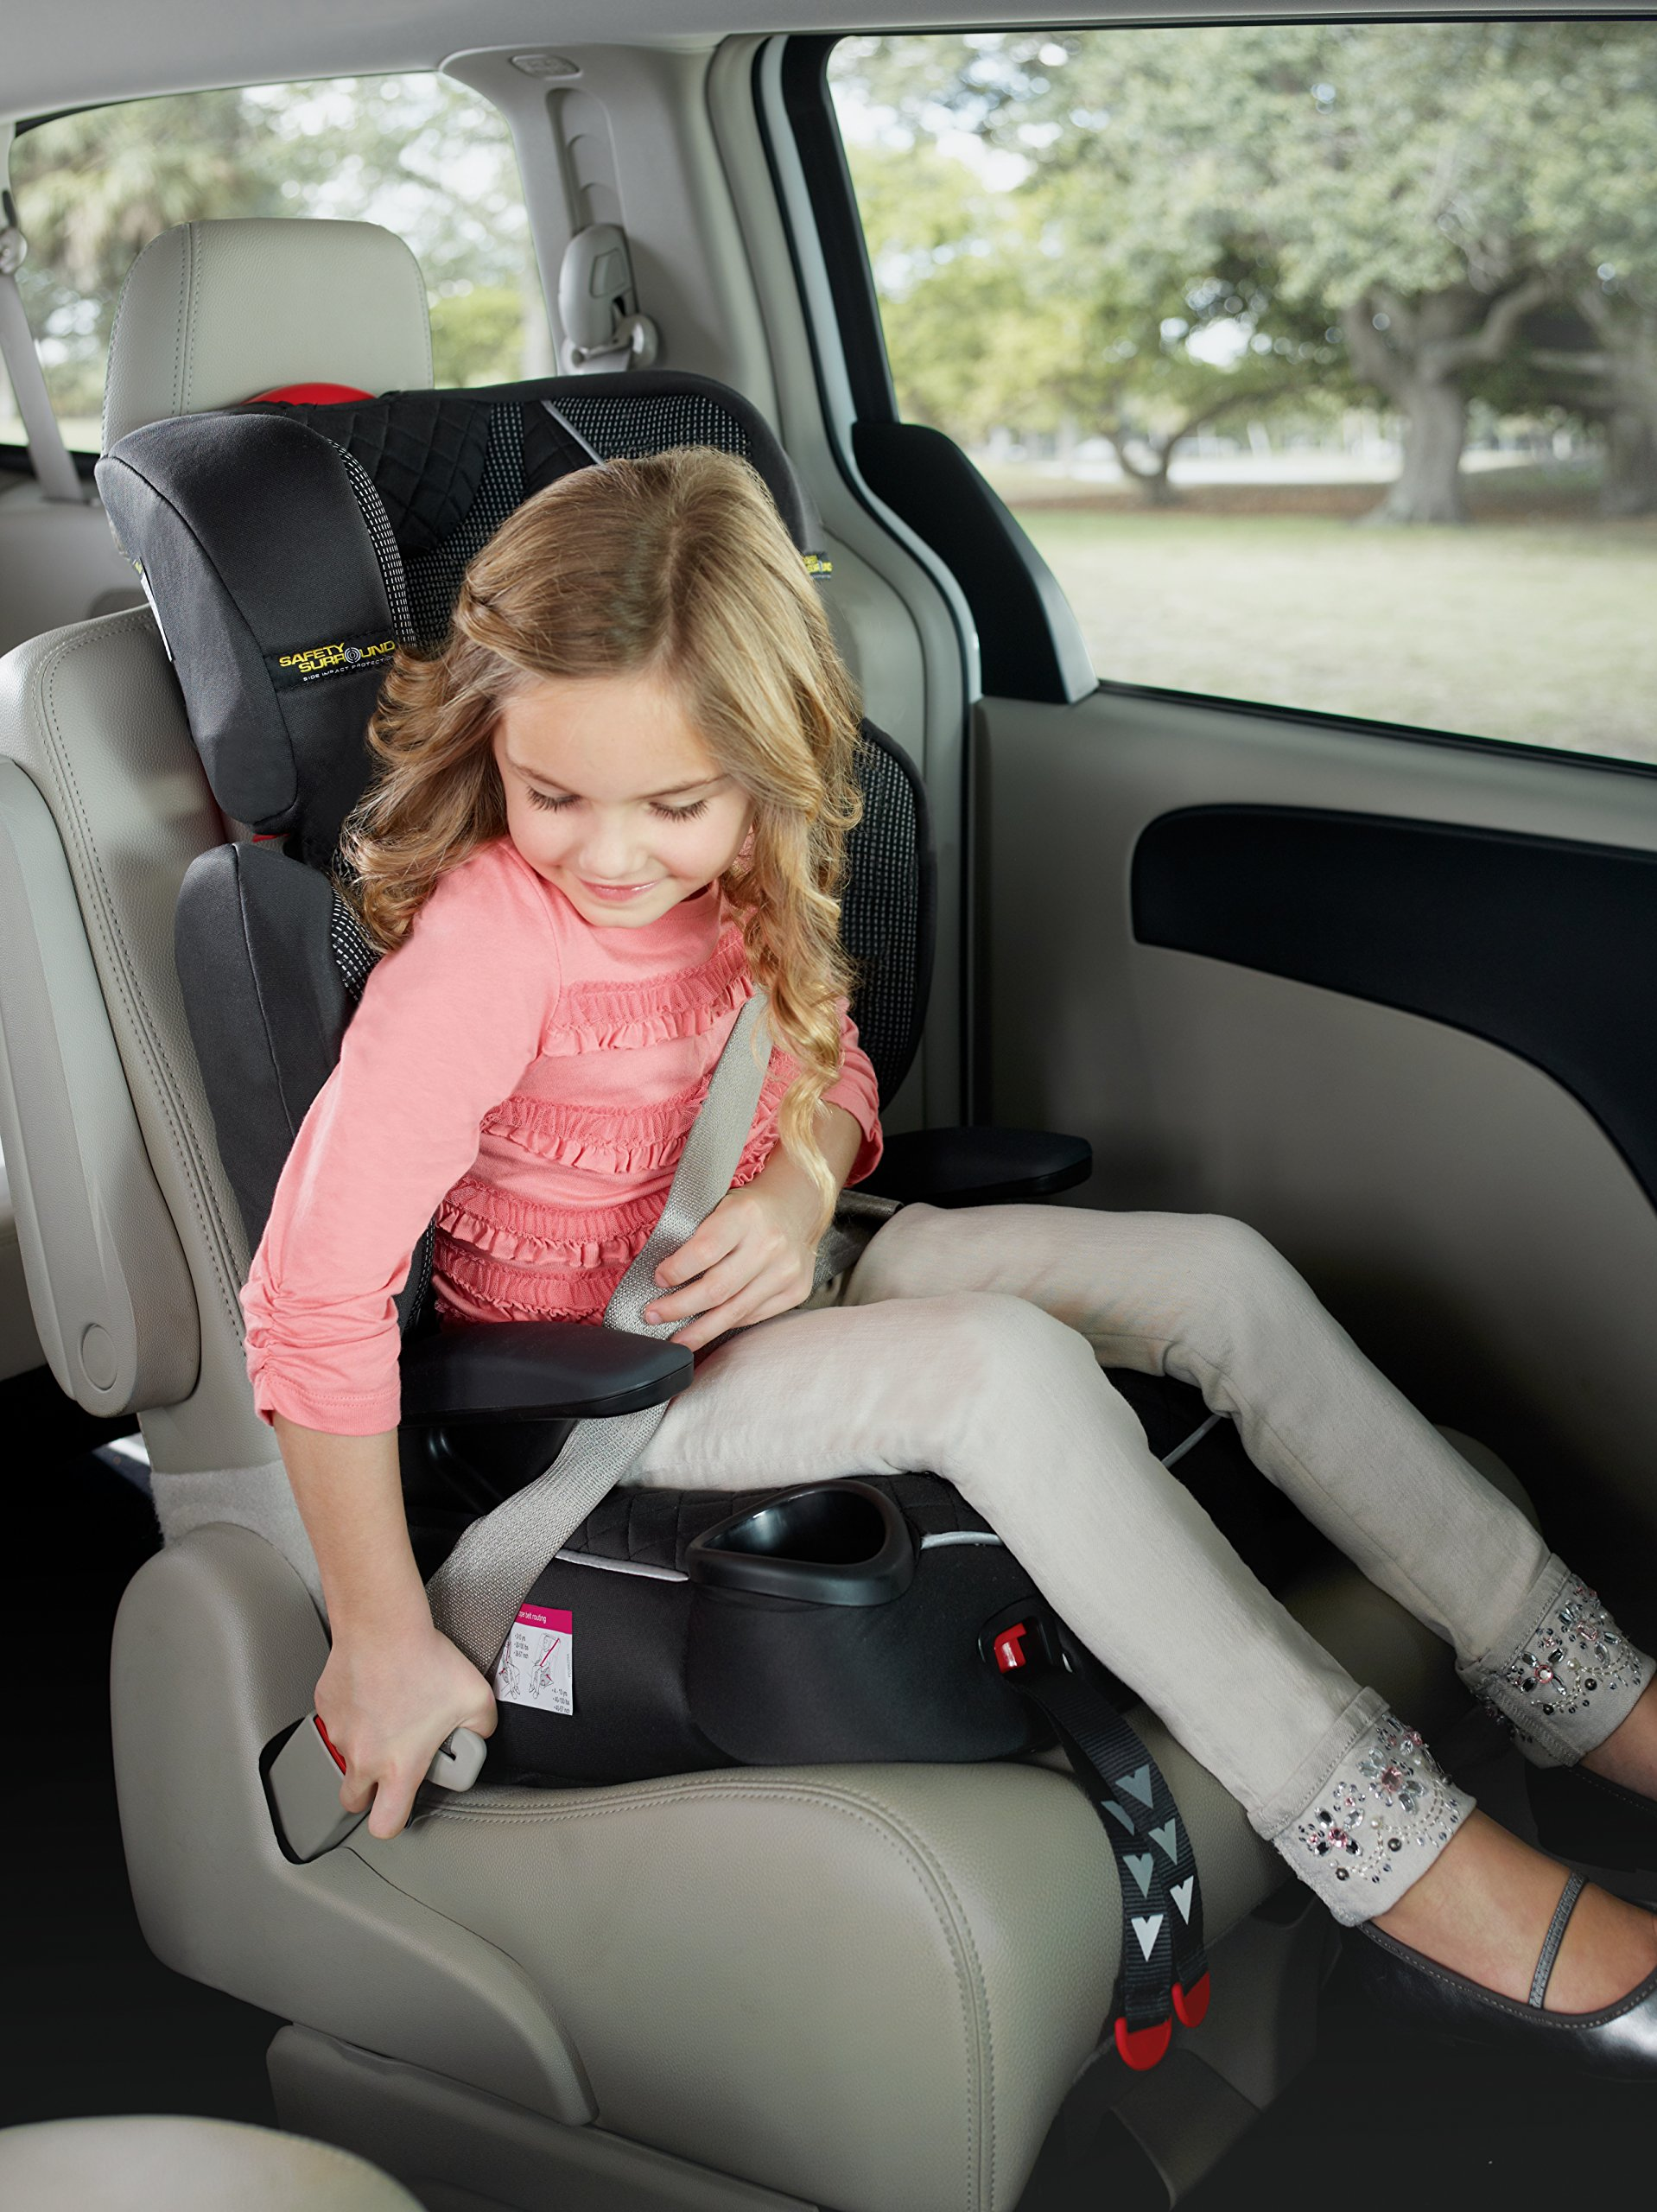 Graco Affix Highback Booster Group 2/3, Stargazer Graco One-hand ISOcatch connectors secure the car seat in place,One-hand, adjustable headrest for ease-of-use For children 3 to 10 years old Highback Mode Weight: 30-100 lb Height: 38-57 inches Backless Mode Weight: 40-100 lb Height: 40-57 inches STOP using this car seat and throw it away 10 years after the date of manufacture. Side impact protection built into both the side wings 4